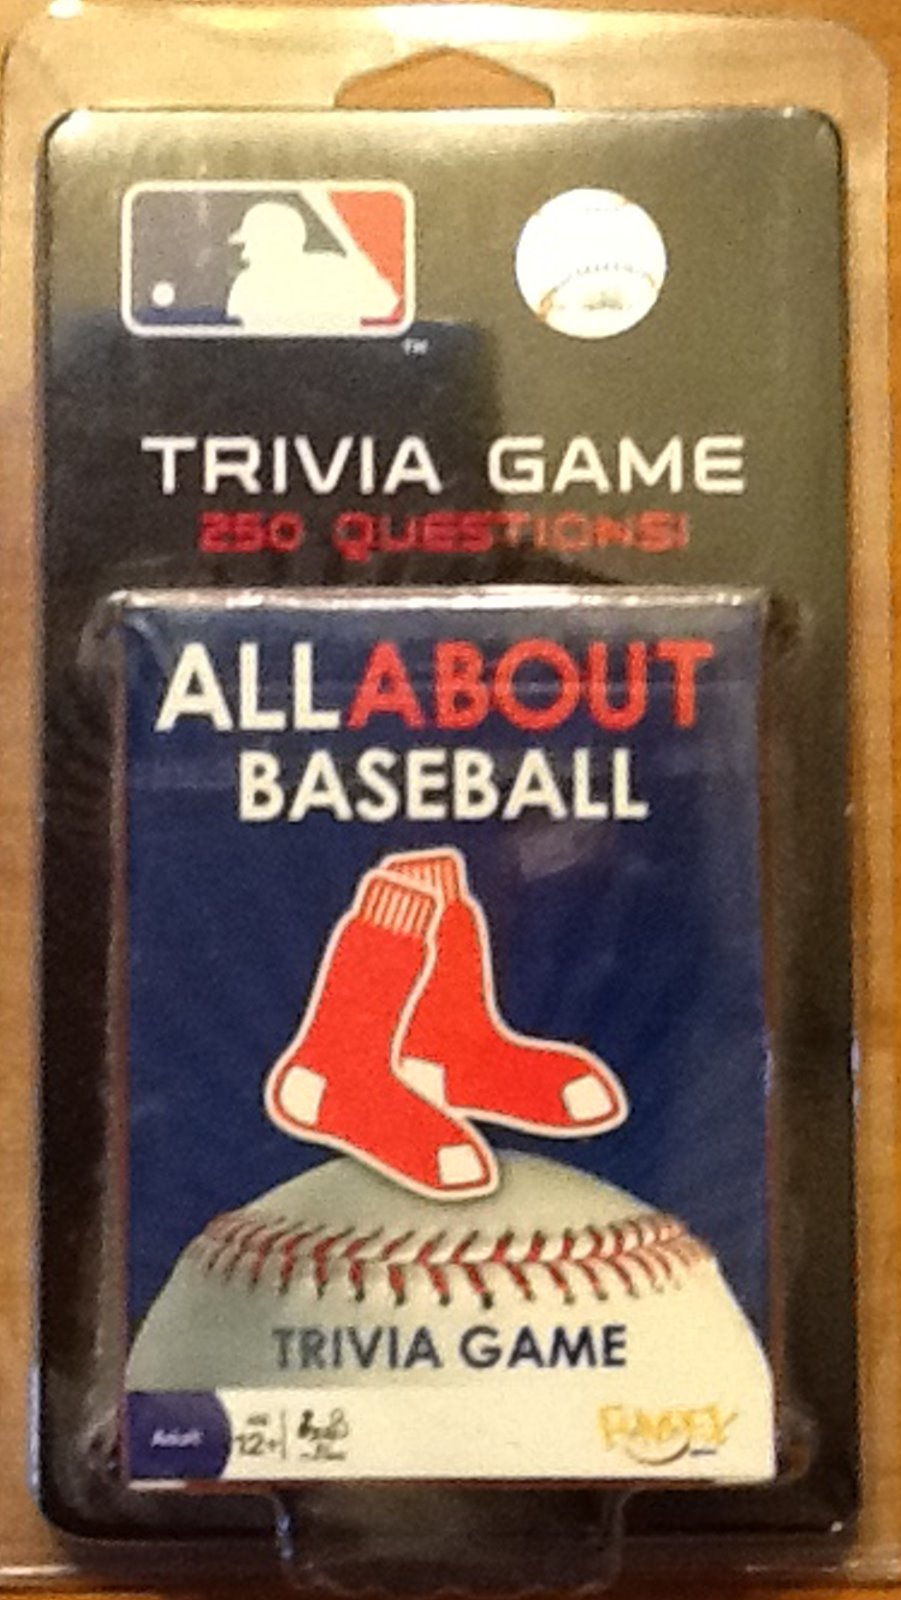 All About Baseball Trivia Game 250 Questions about Boston Red Sox